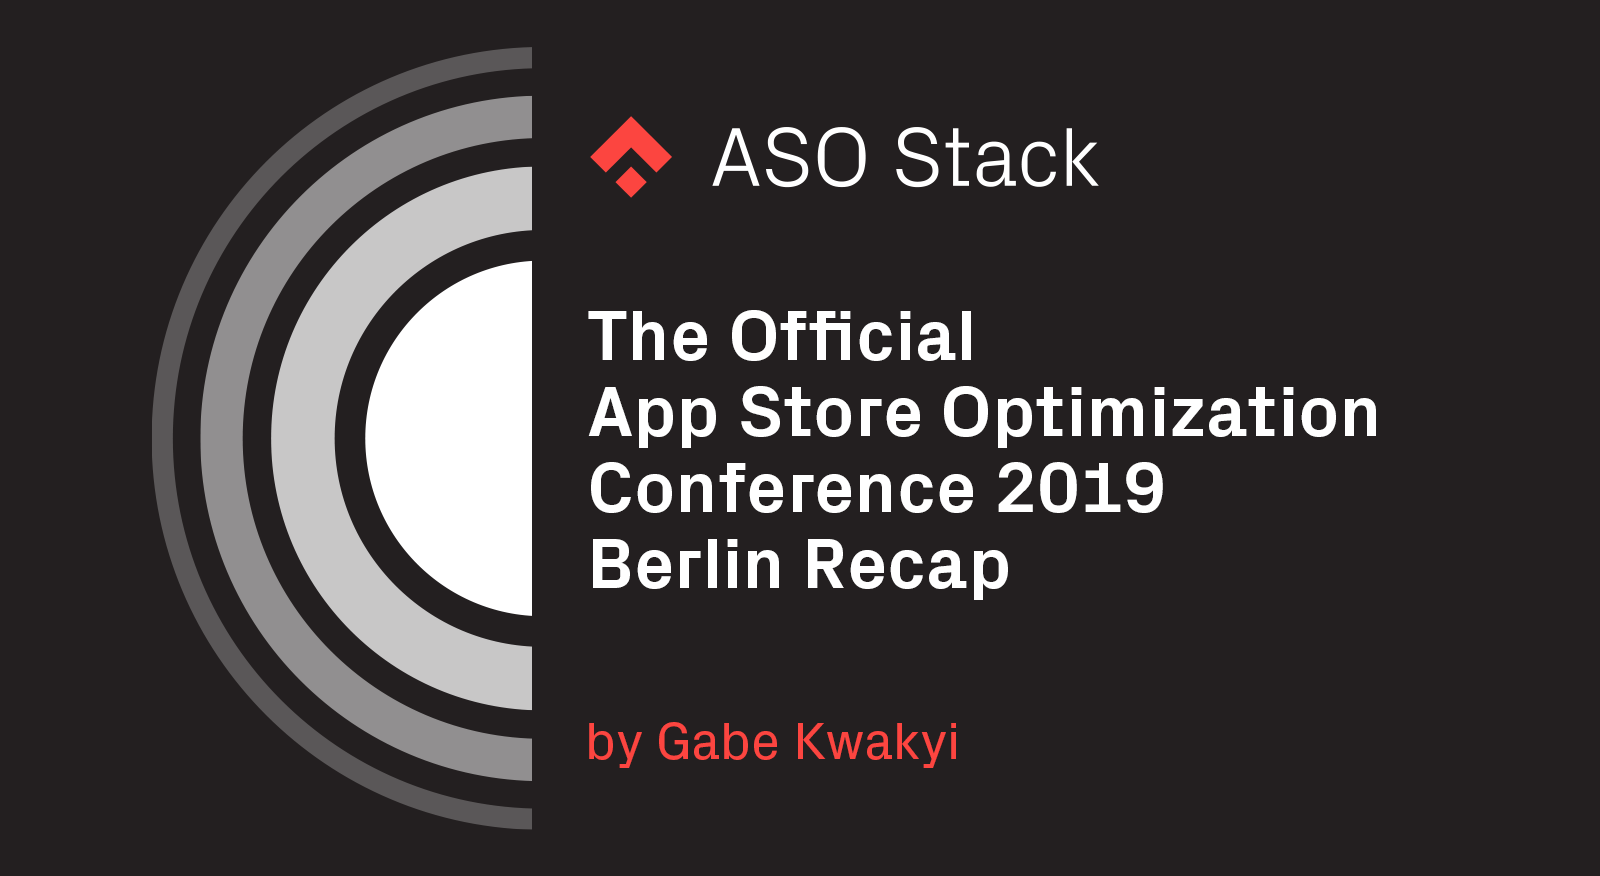 The Official App Store Optimization Conference 2019 Berlin